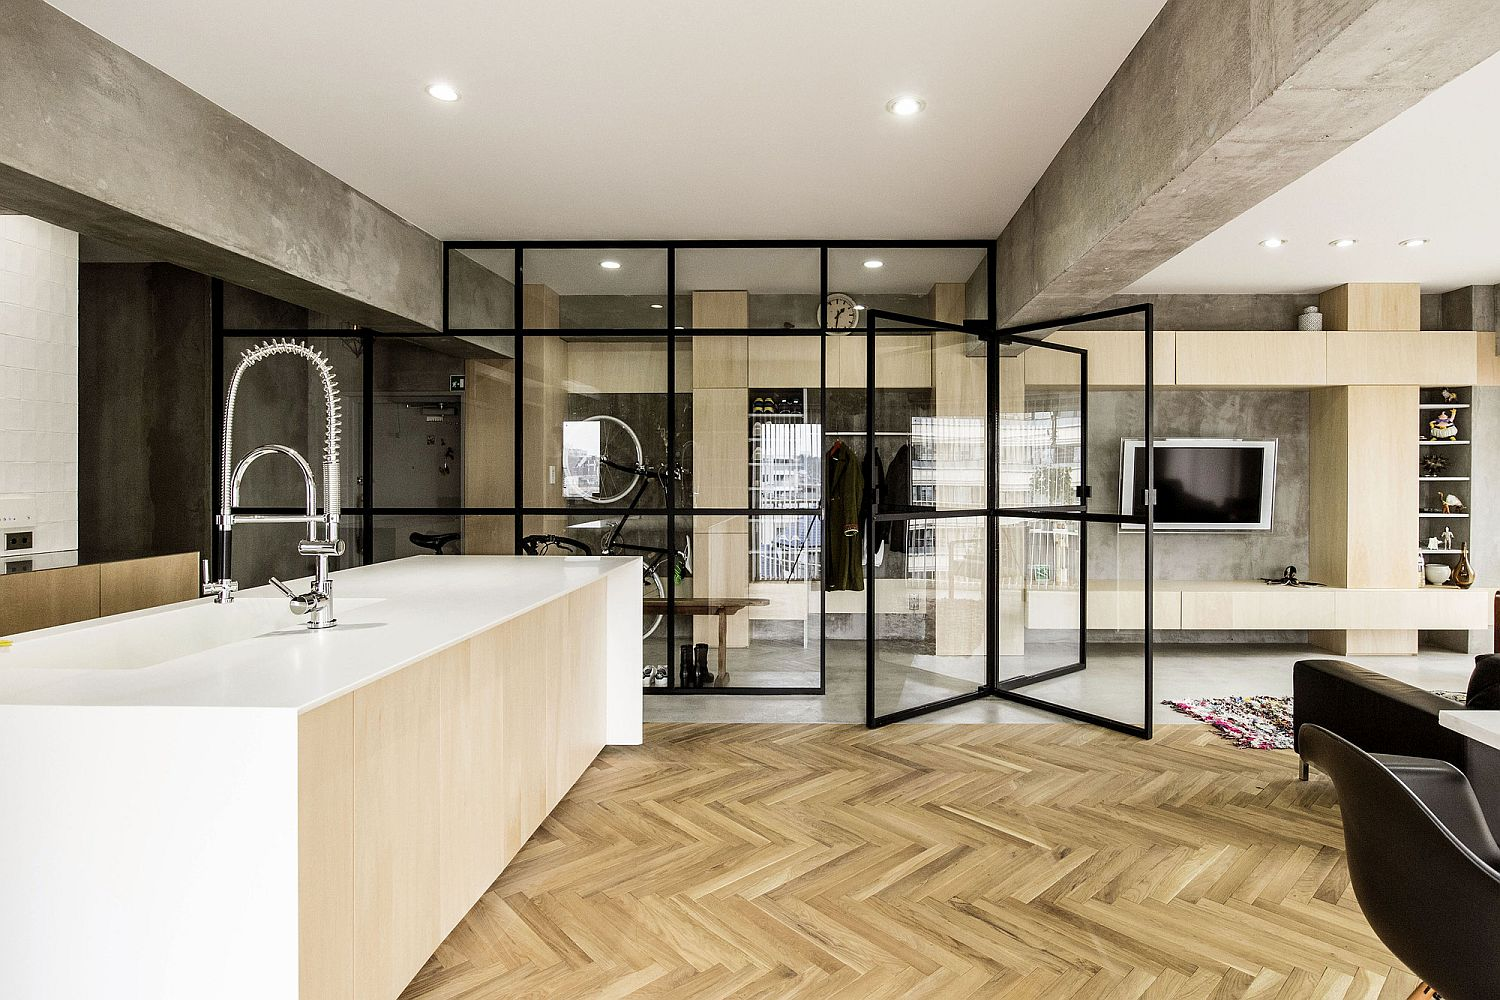 70s-apartment-in-Tokyo-revamped-with-glass-partitions-and-revolving-glass-door